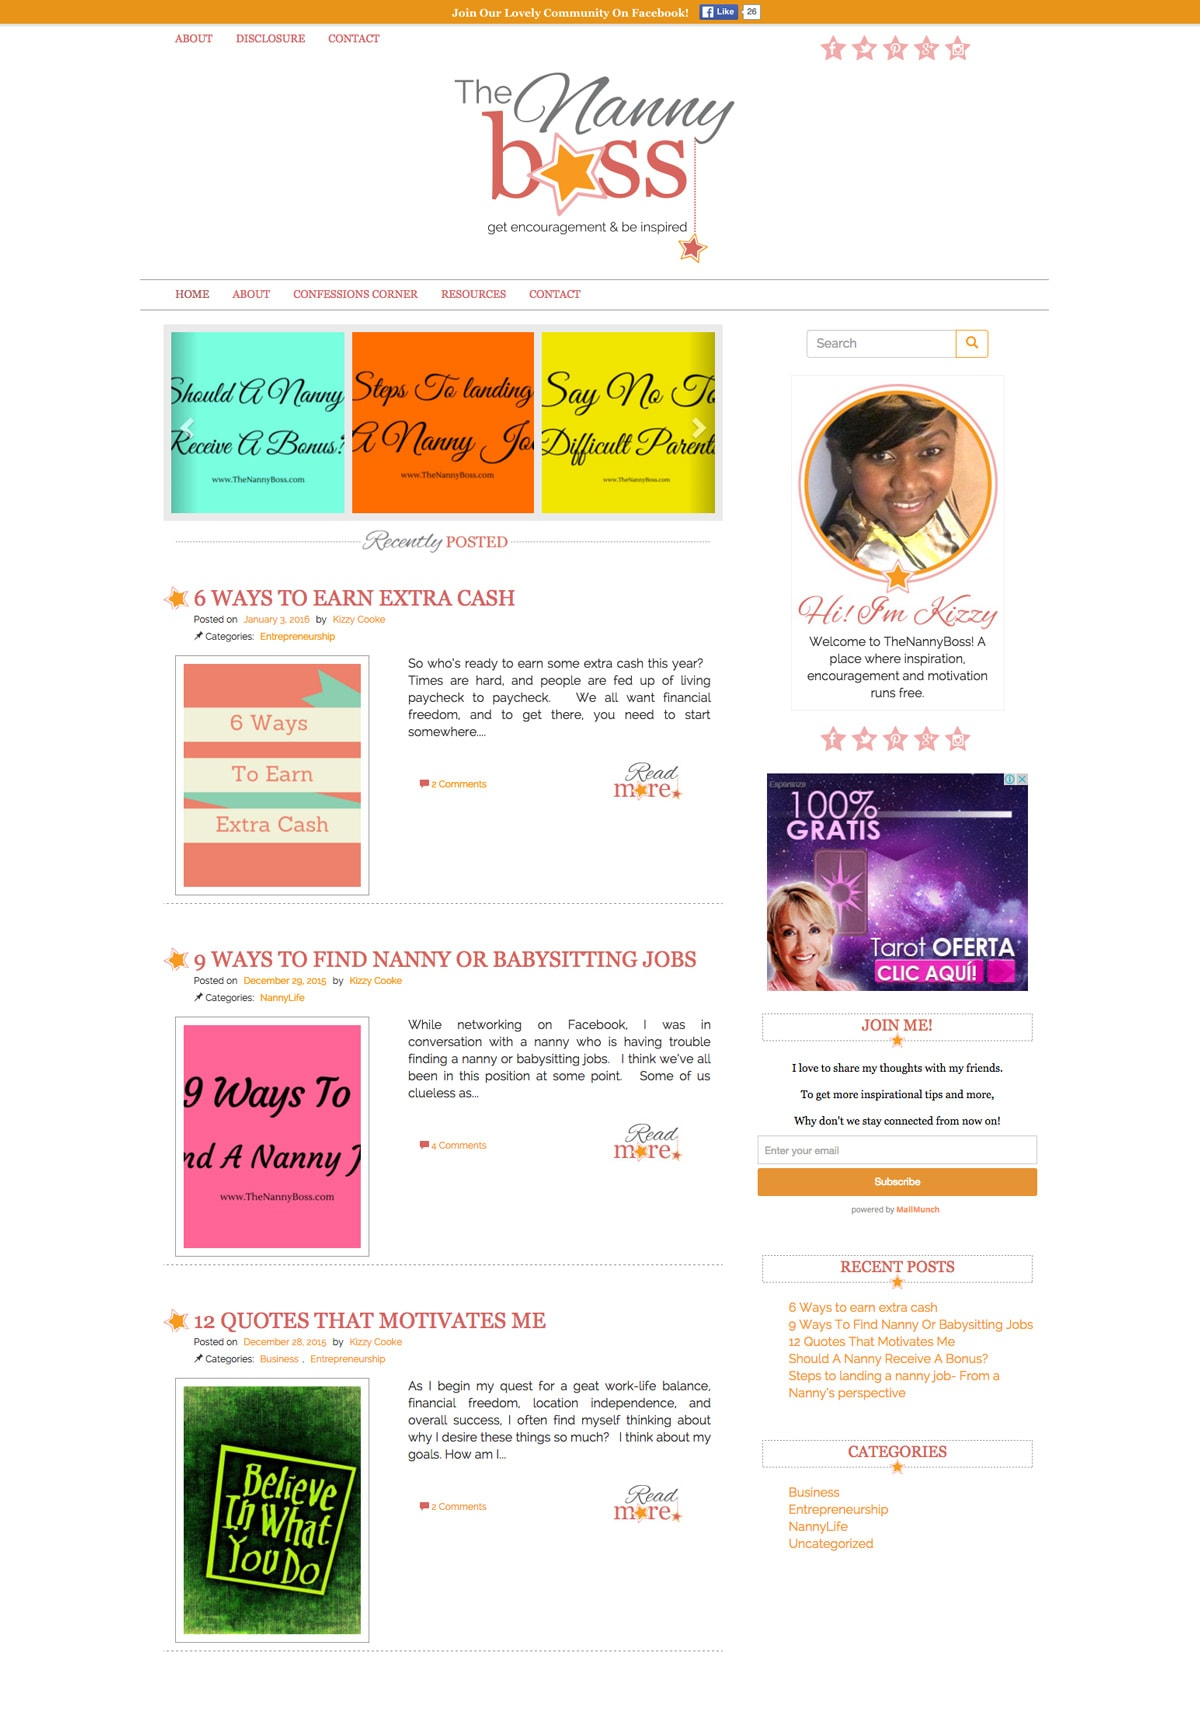 The Nanny Boss Fresh Blog Design